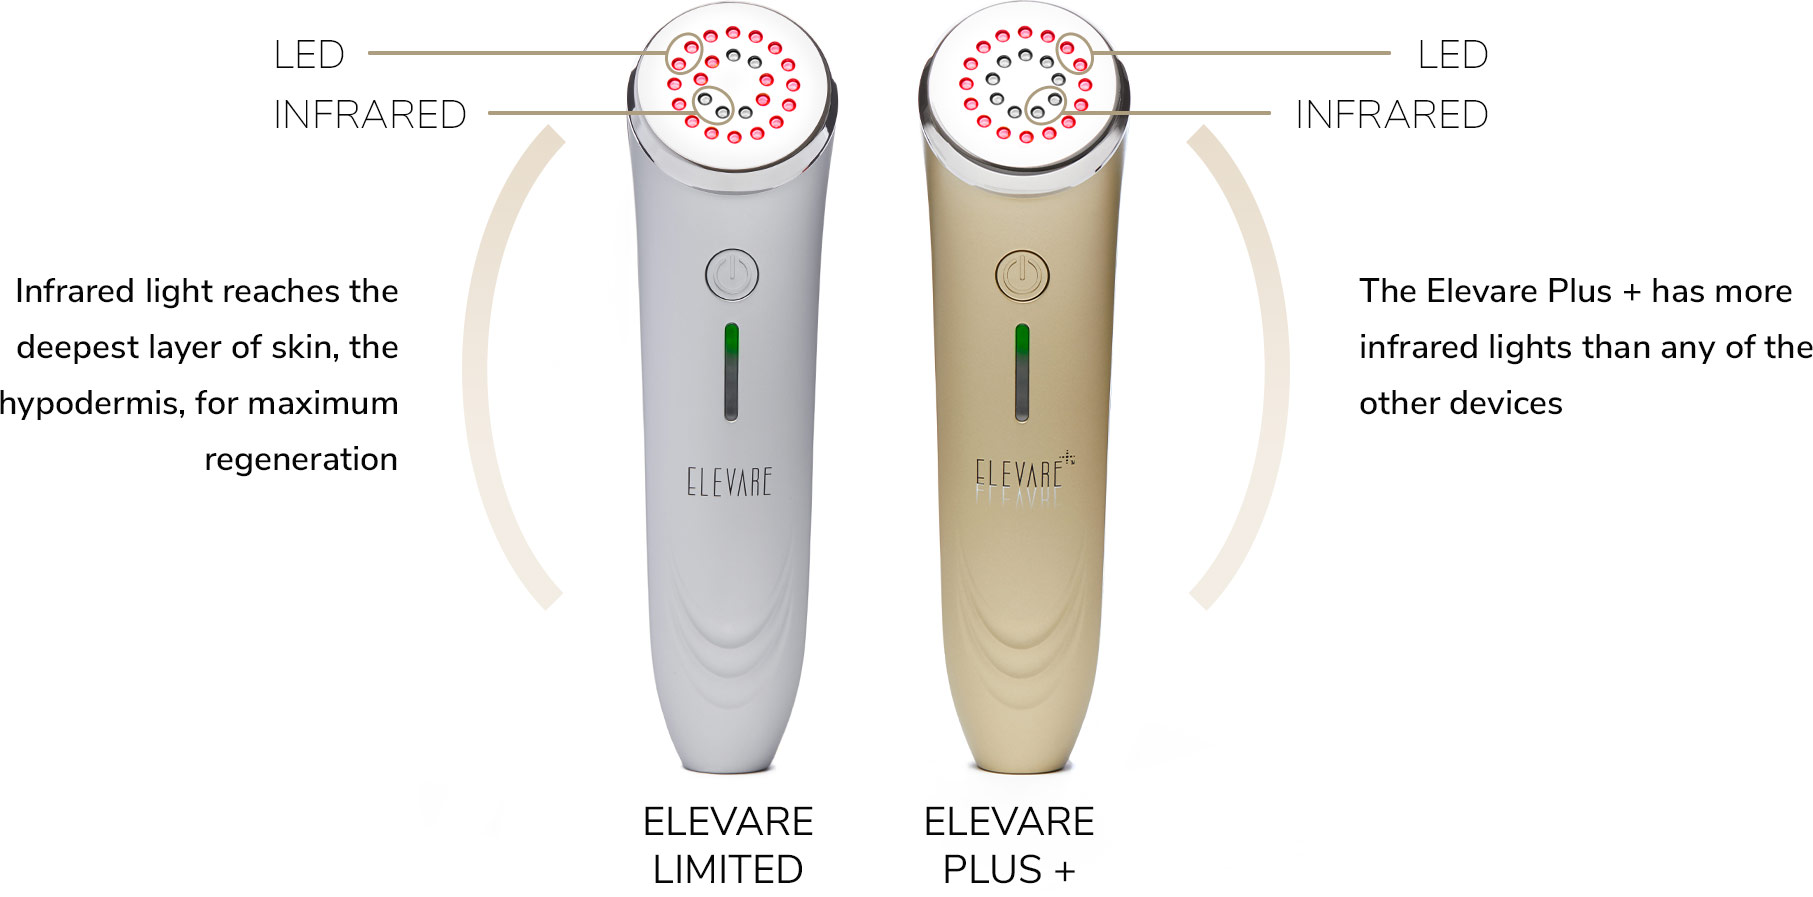 Infrared light reaches the deepest layer of skin, the hypodermis, for maximum regeneration